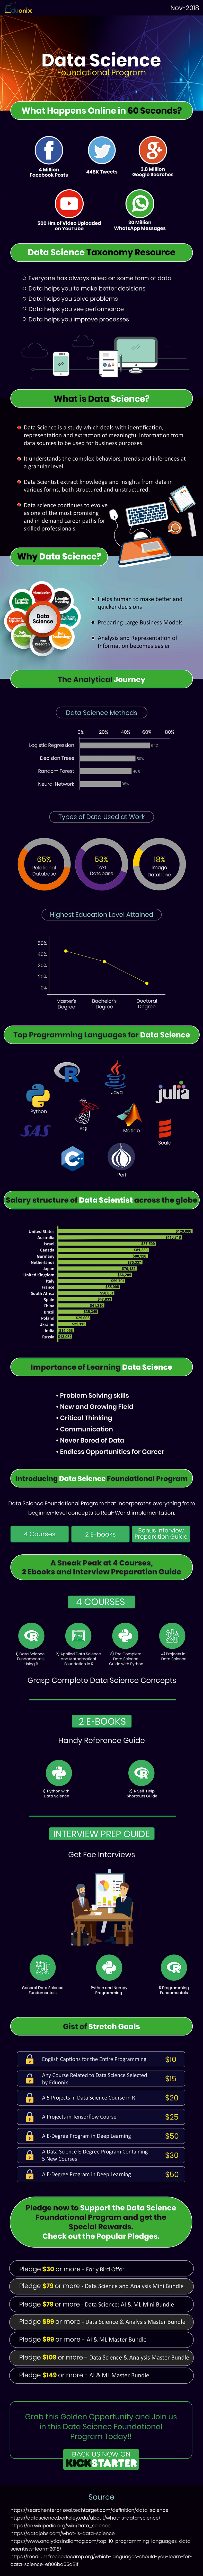 Data Science-Infographic